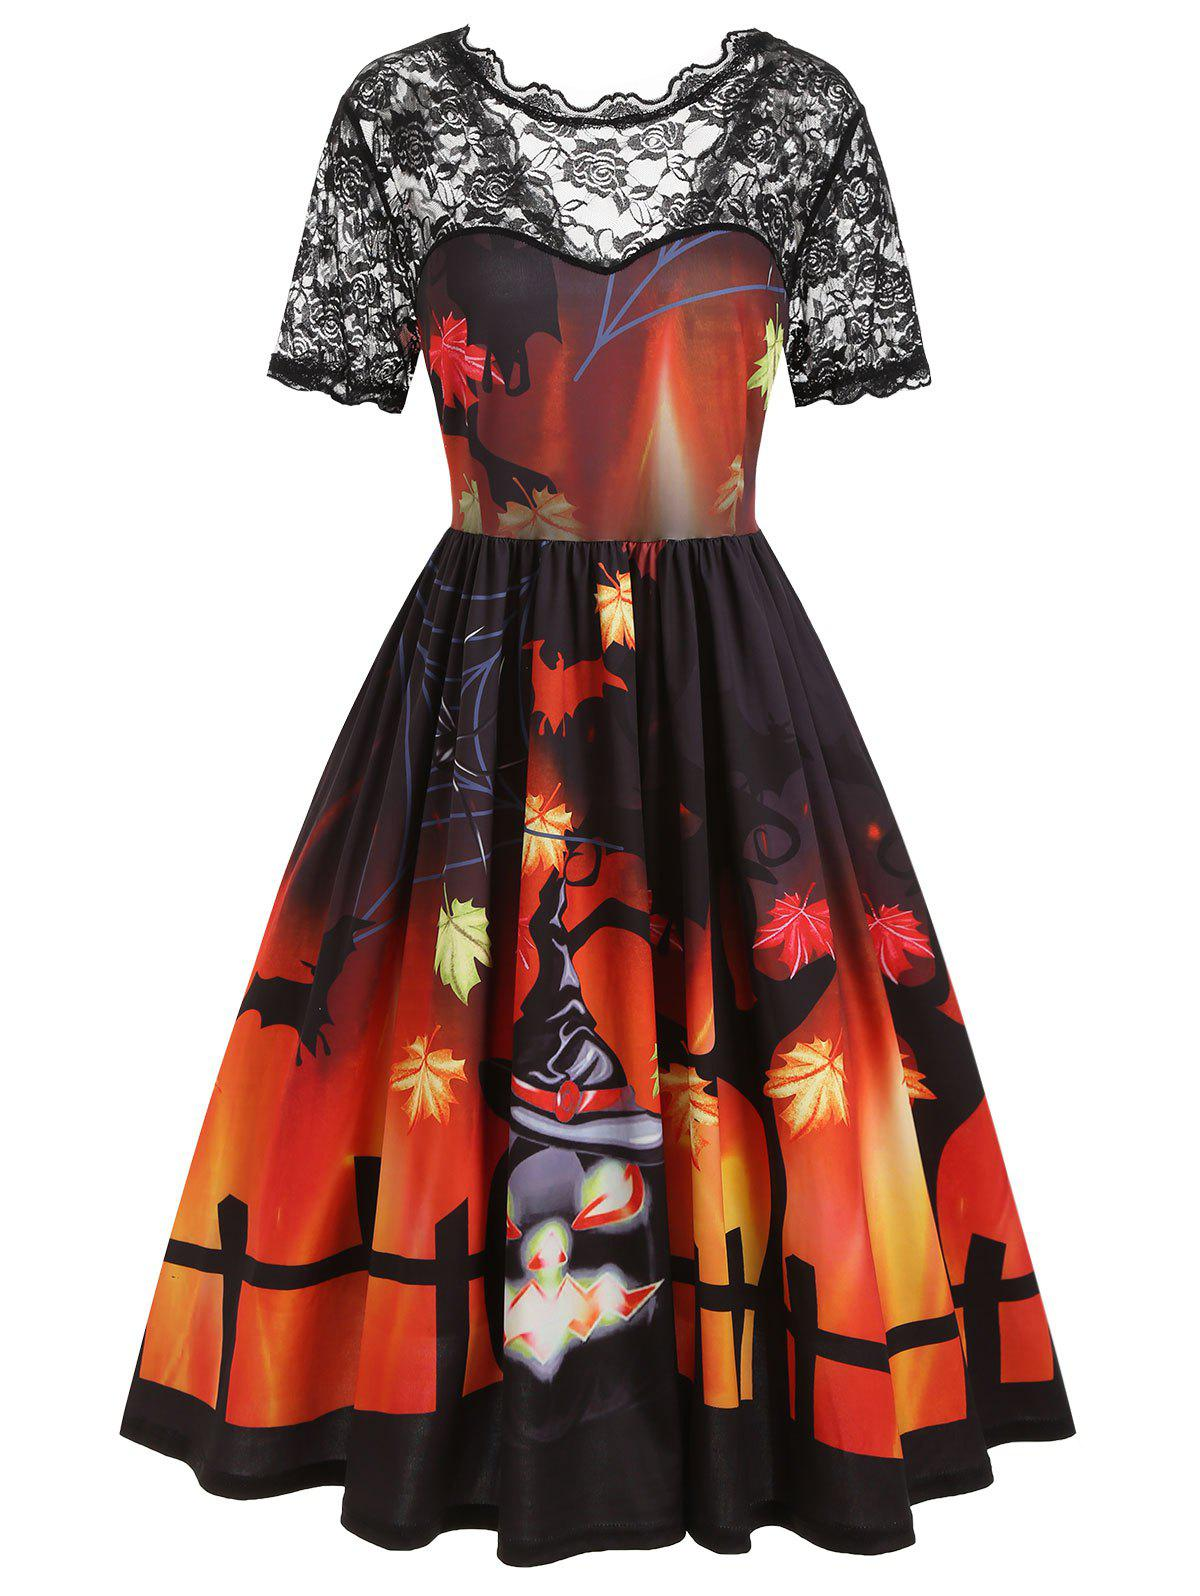 Plus Size Pumpkin 3D Print Halloween Vintage Swing Dress